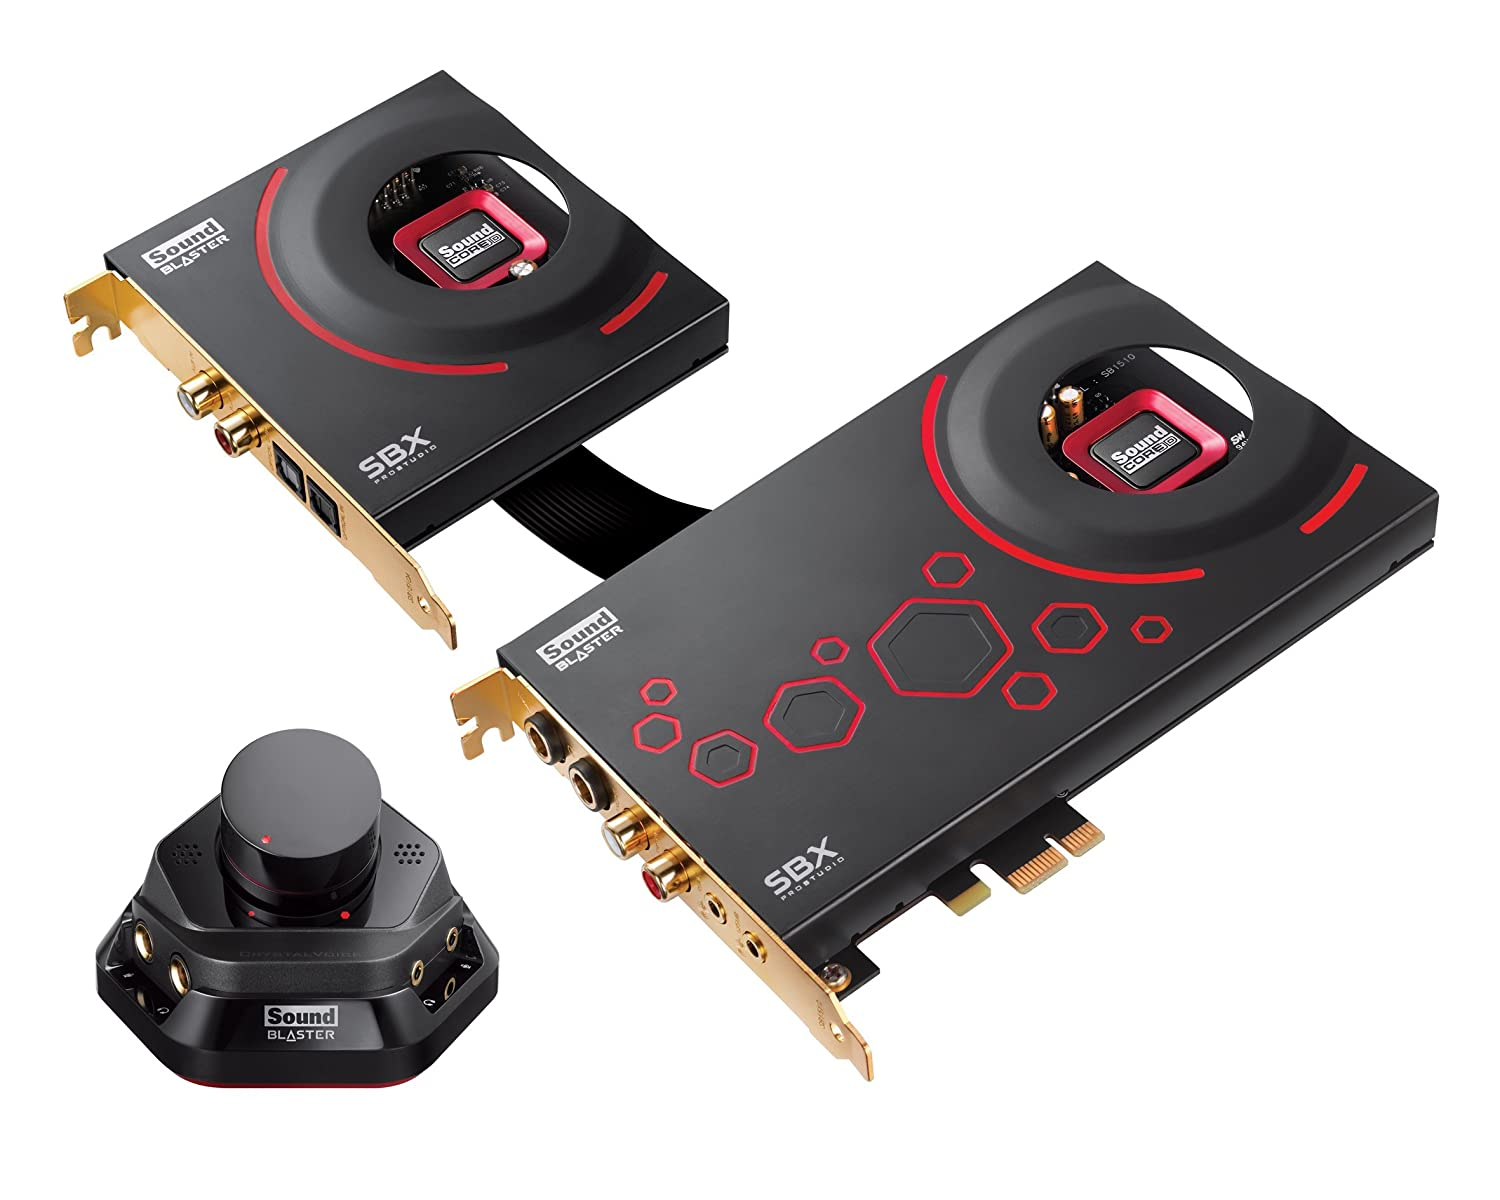 Creative Sound Blaster ZxR - Tarjeta de sonido interna (SNR 124 dB, PCI-Express, jack de 3,5 mm), color negro